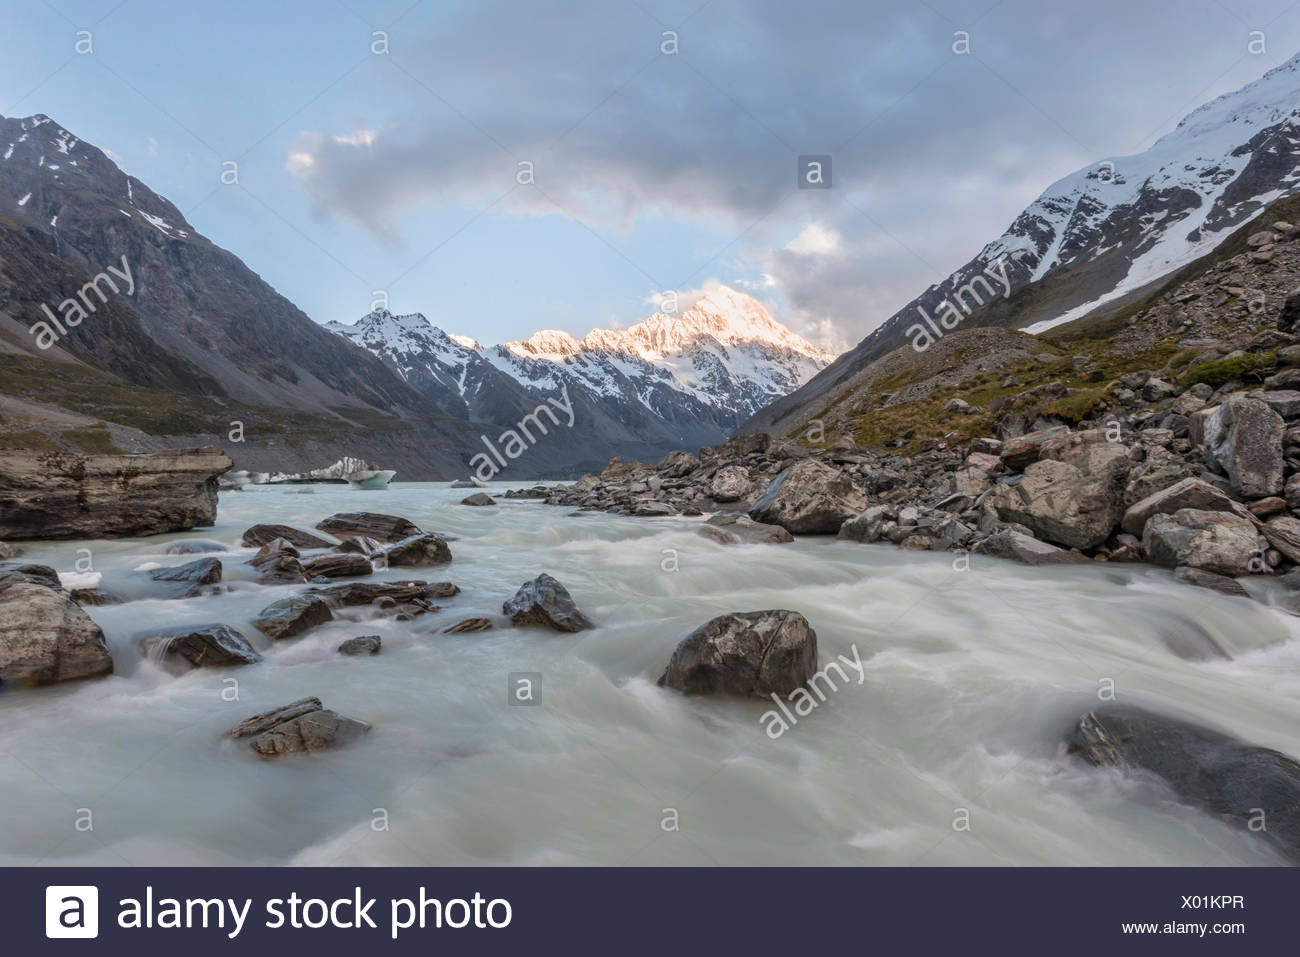 Hooker River, Hooker Valley, Rear Mount Cook, Mount Cook National Park, Southern Alps, Canterbury Region, Southland, New Zealand Stock Photo